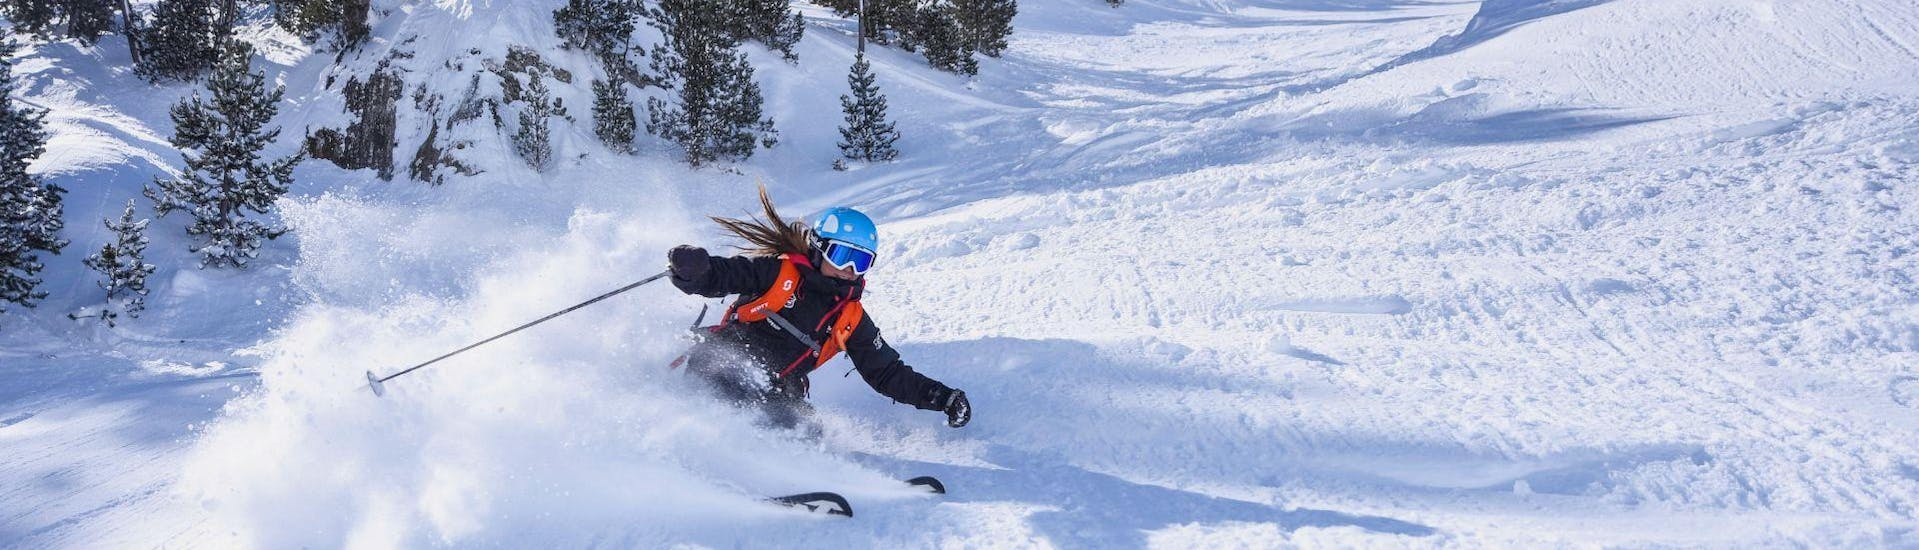 A ski instructor from Escuela Ski Sierra Nevada elegantly and sportively skis down the beautiful slopes during the Ski Lessons for Adults - All Levels.